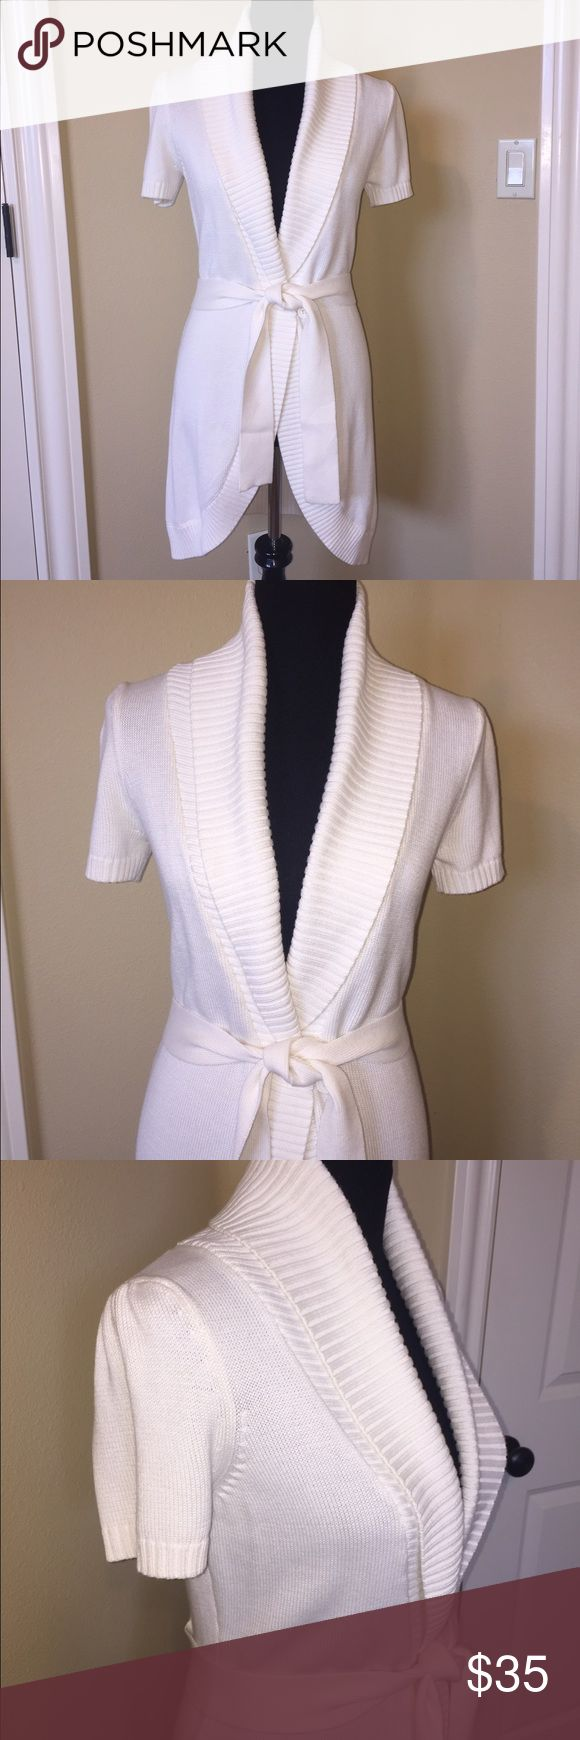 "INC Int'l Concepts Long Cardigan Sweater NWOT INC International Concepts long Cardigan Sweater NWOT. Short sleeves. Stunning cream colored sweater with belt.  Shawl collar and single button closure. Pleat detail on back by belt. Ribbed trim. 33"" length. 60% cotton/40% rayon. Size S. INC International Concepts Sweaters Cardigans"